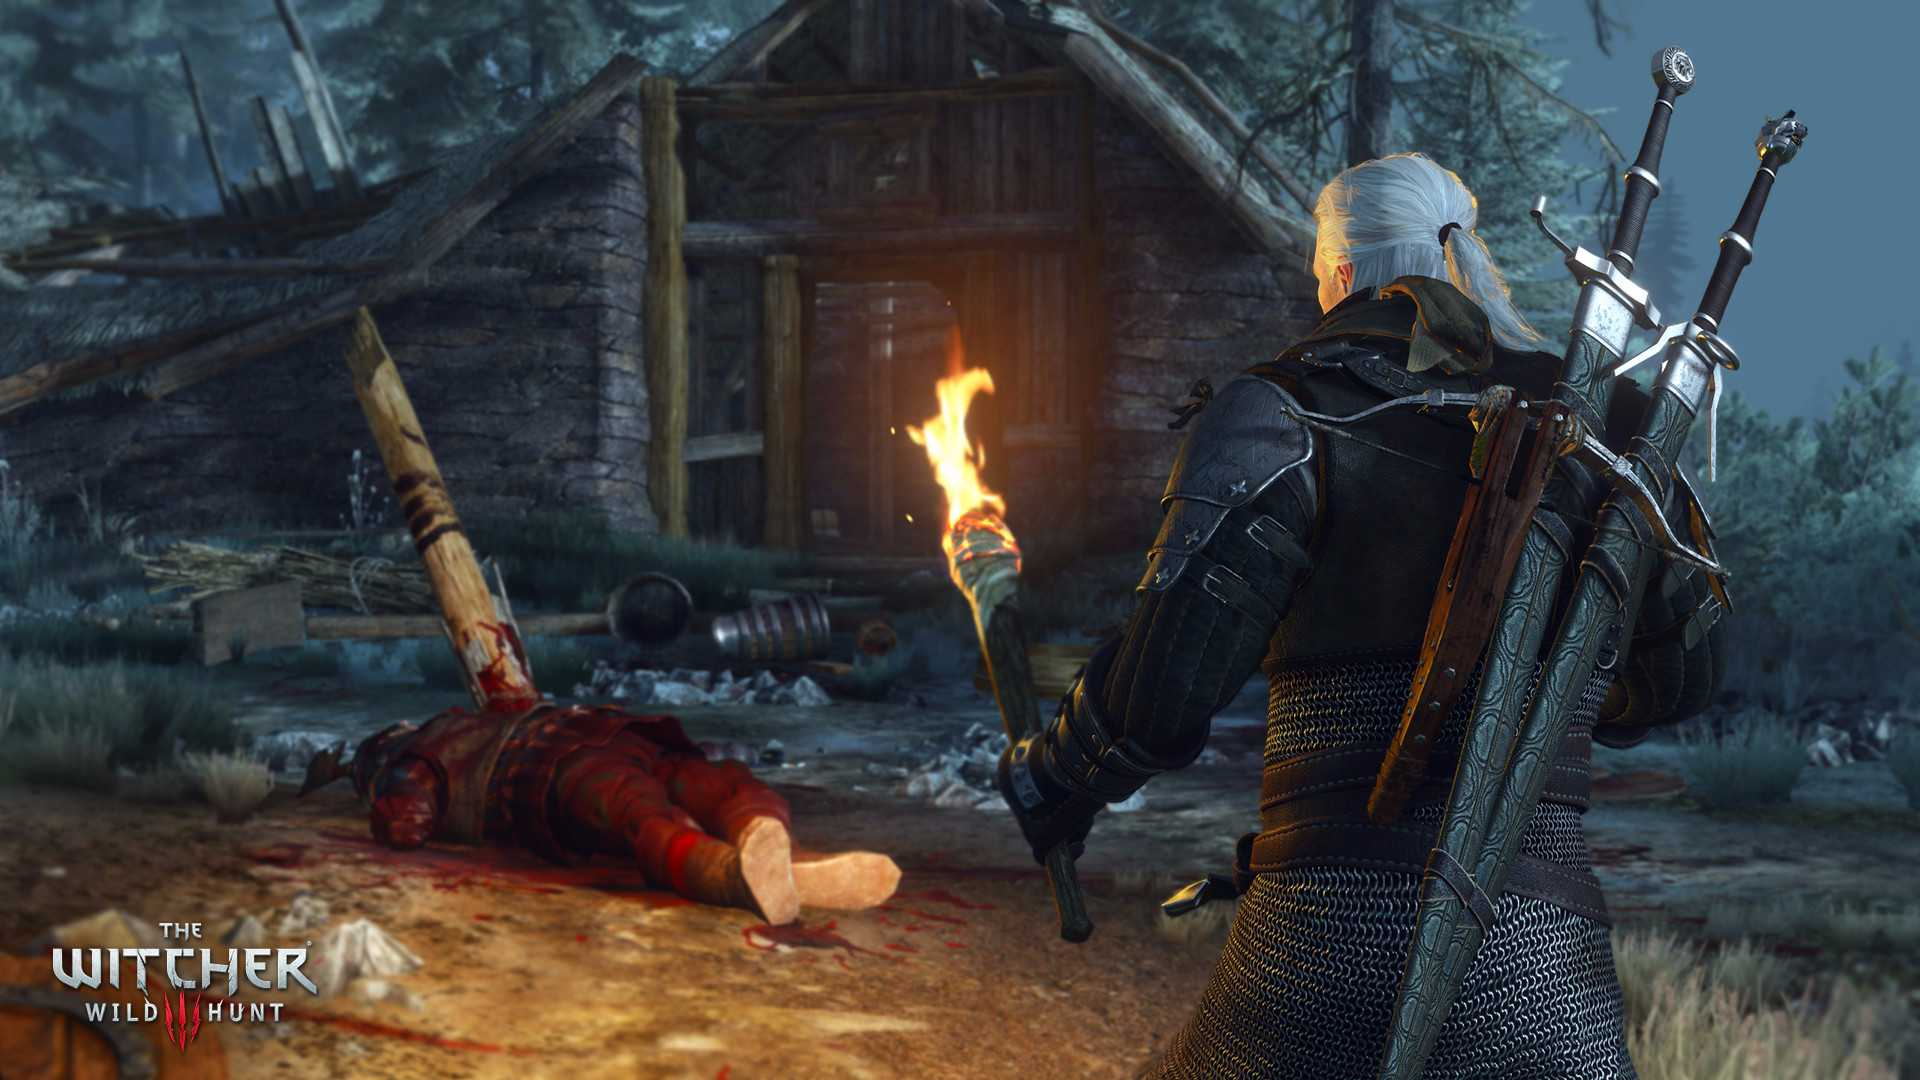 the witcher3 anh1